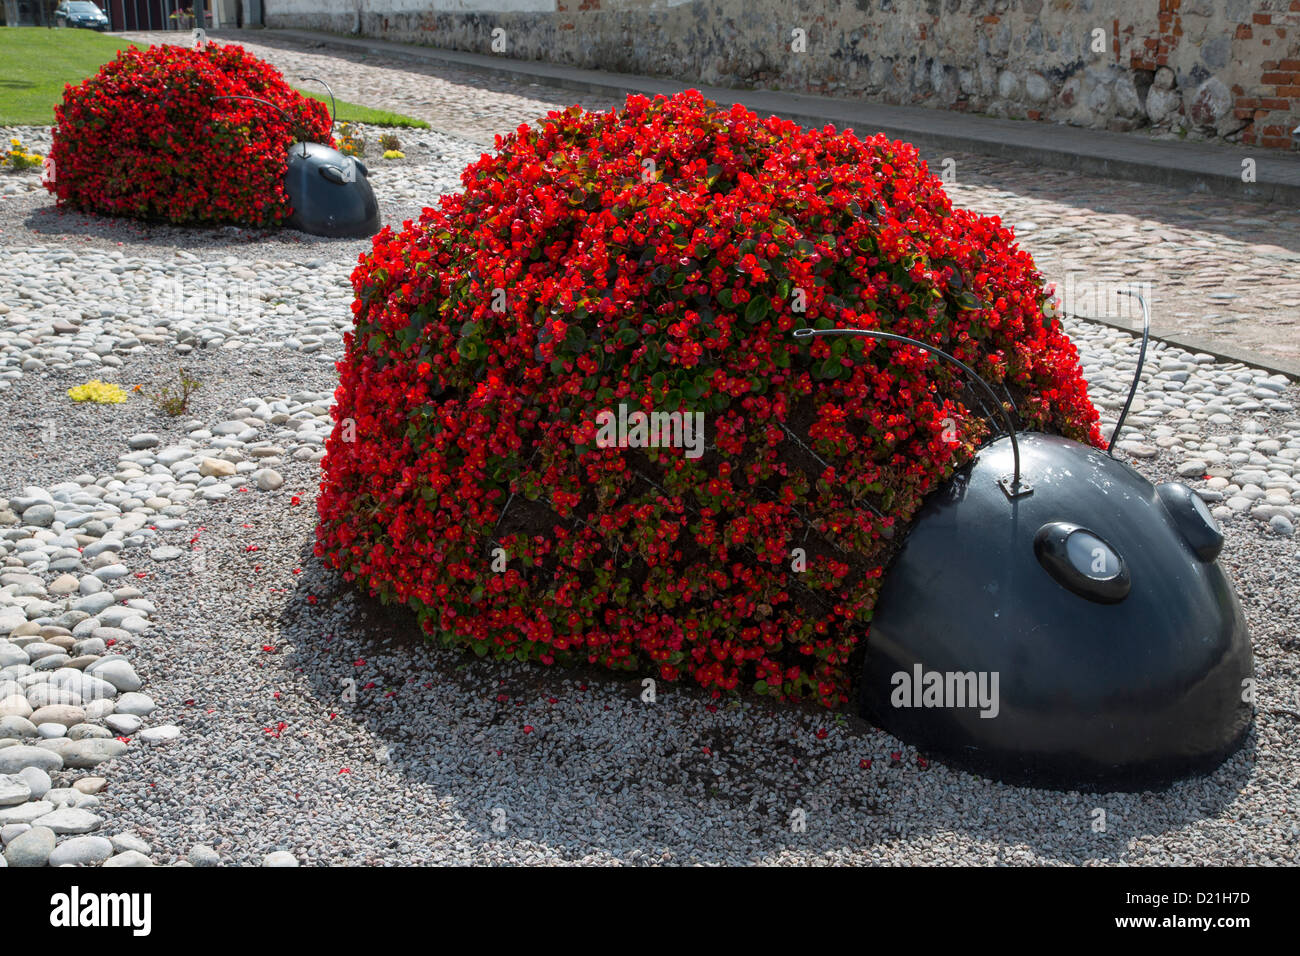 Ladybug flower planters, Ventspils, Latvia, Baltic States, Europe - Stock Image